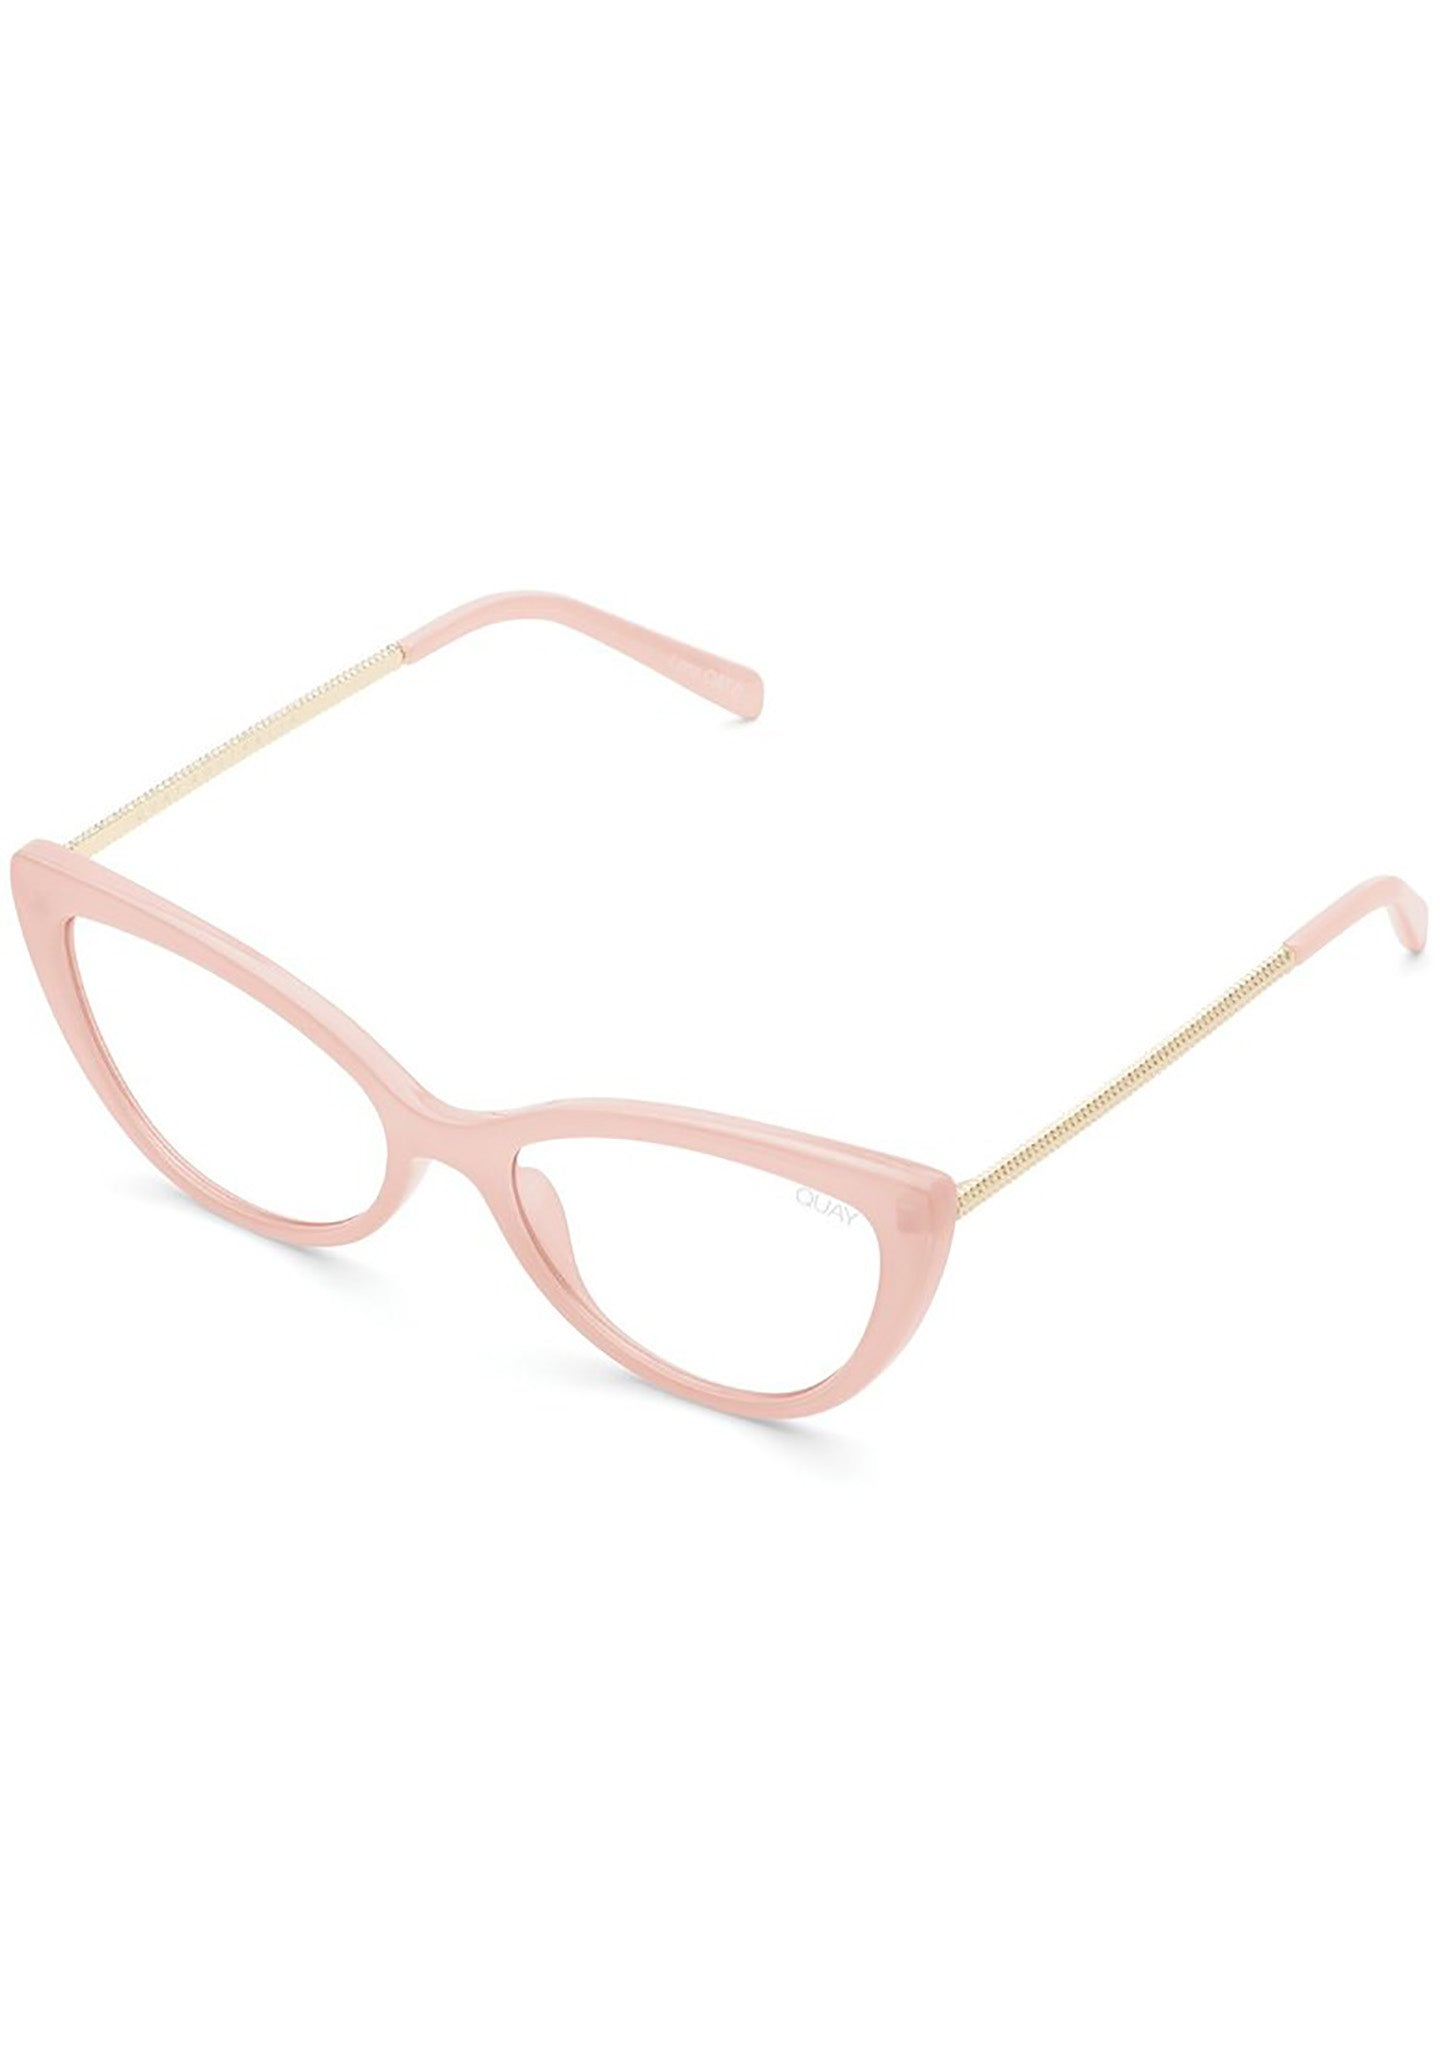 X JLO Lustworthy Bluelight Glasses in Pink